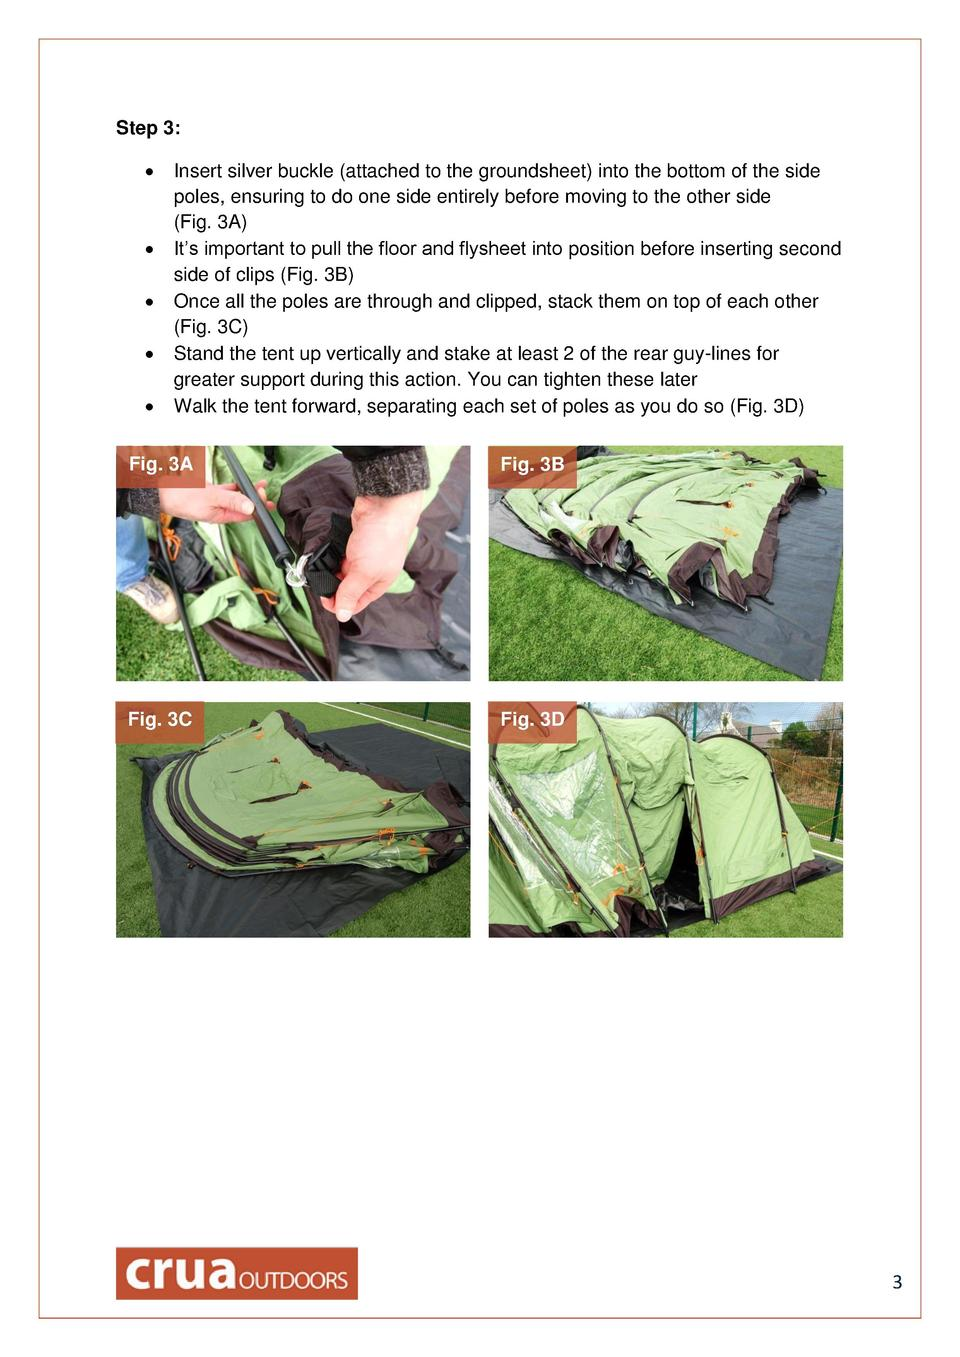 Step 3                        Insert silver buckle  attached to the groundsheet  into the bottom of the side poles, ensuri...